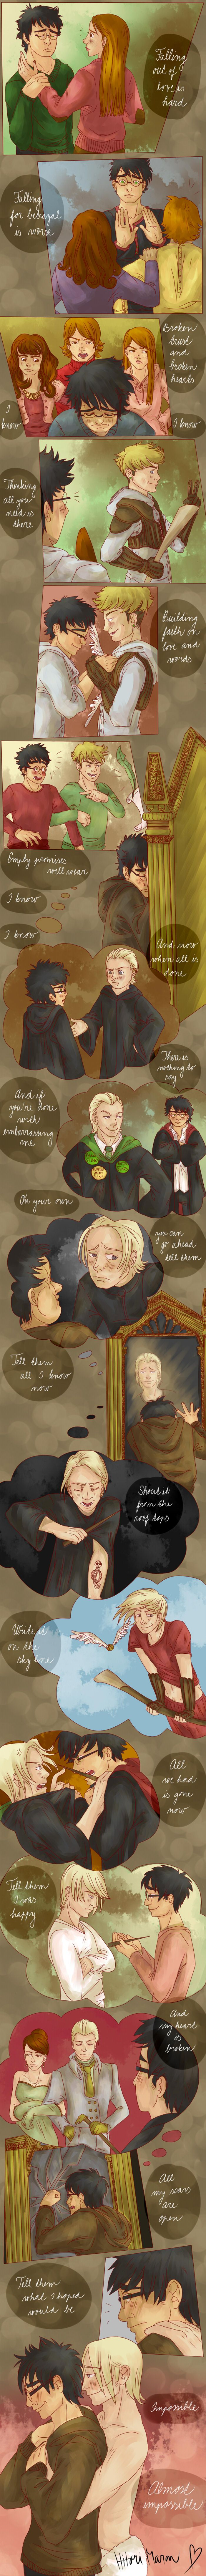 DRARRY Almost Impossible by HitoriMaron on DeviantArt